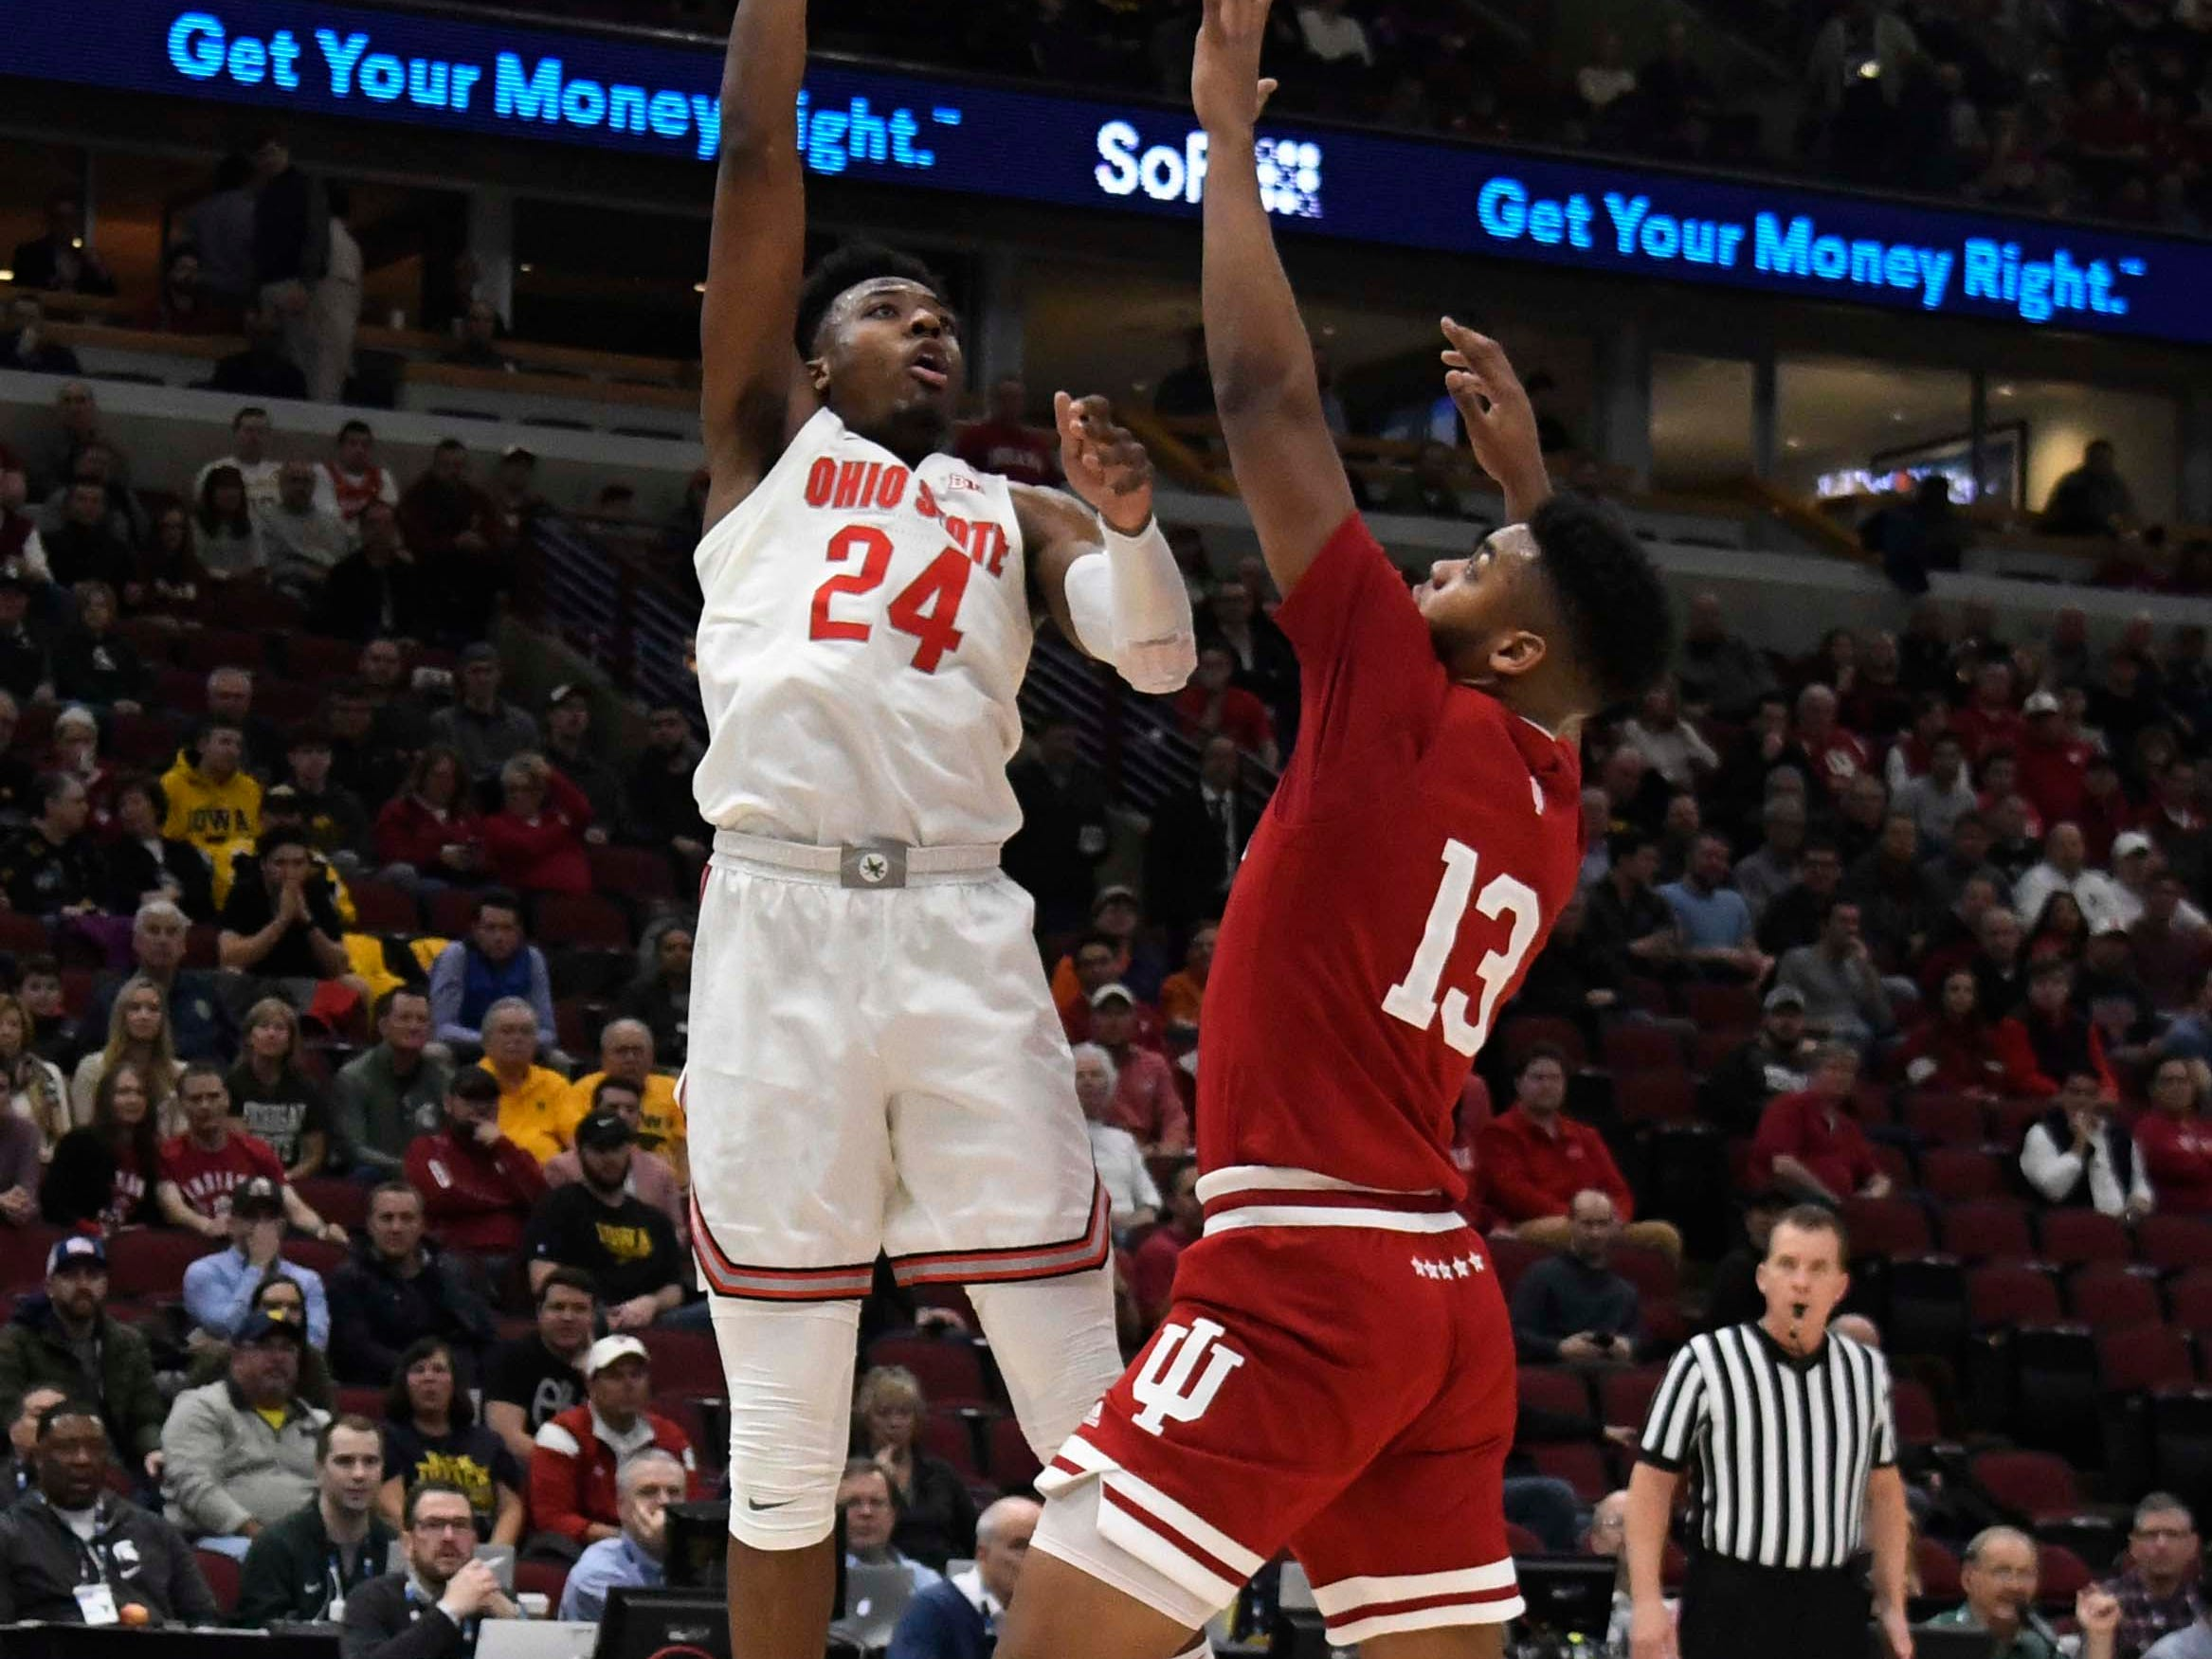 Mar 14, 2019; Chicago, IL, USA; Ohio State Buckeyes forward Andre Wesson (24) shoots over Indiana Hoosiers forward Juwan Morgan (13) during the first half in the Big Ten conference tournament at United Center. Mandatory Credit: David Banks-USA TODAY Sports